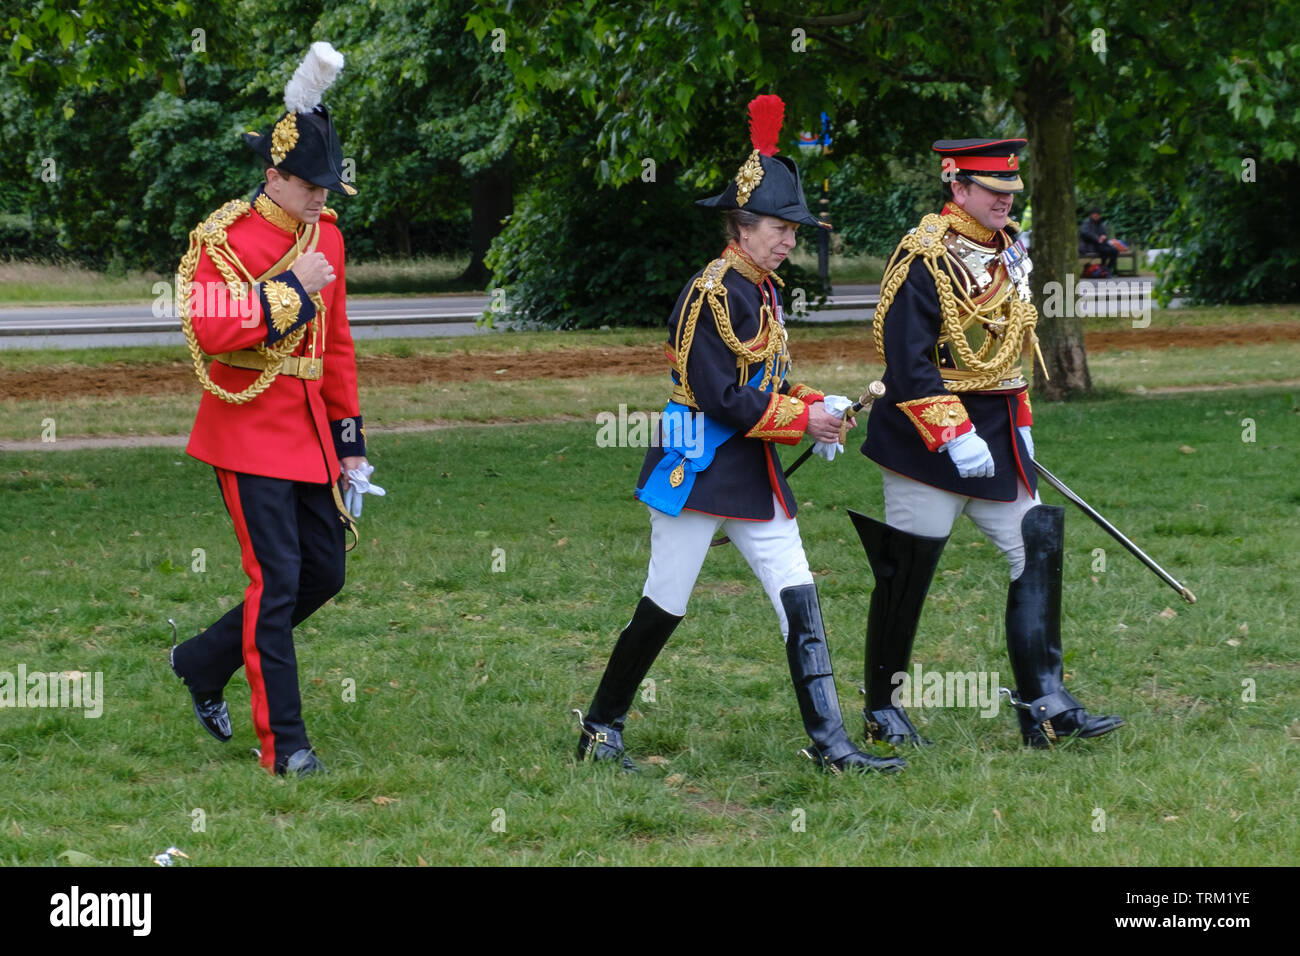 London, England - June 8, 2019: Her Royal Highness The Princess Royal, Colonel of The Blues and Royals  walking in the Hyde Park Together with Officer Stock Photo